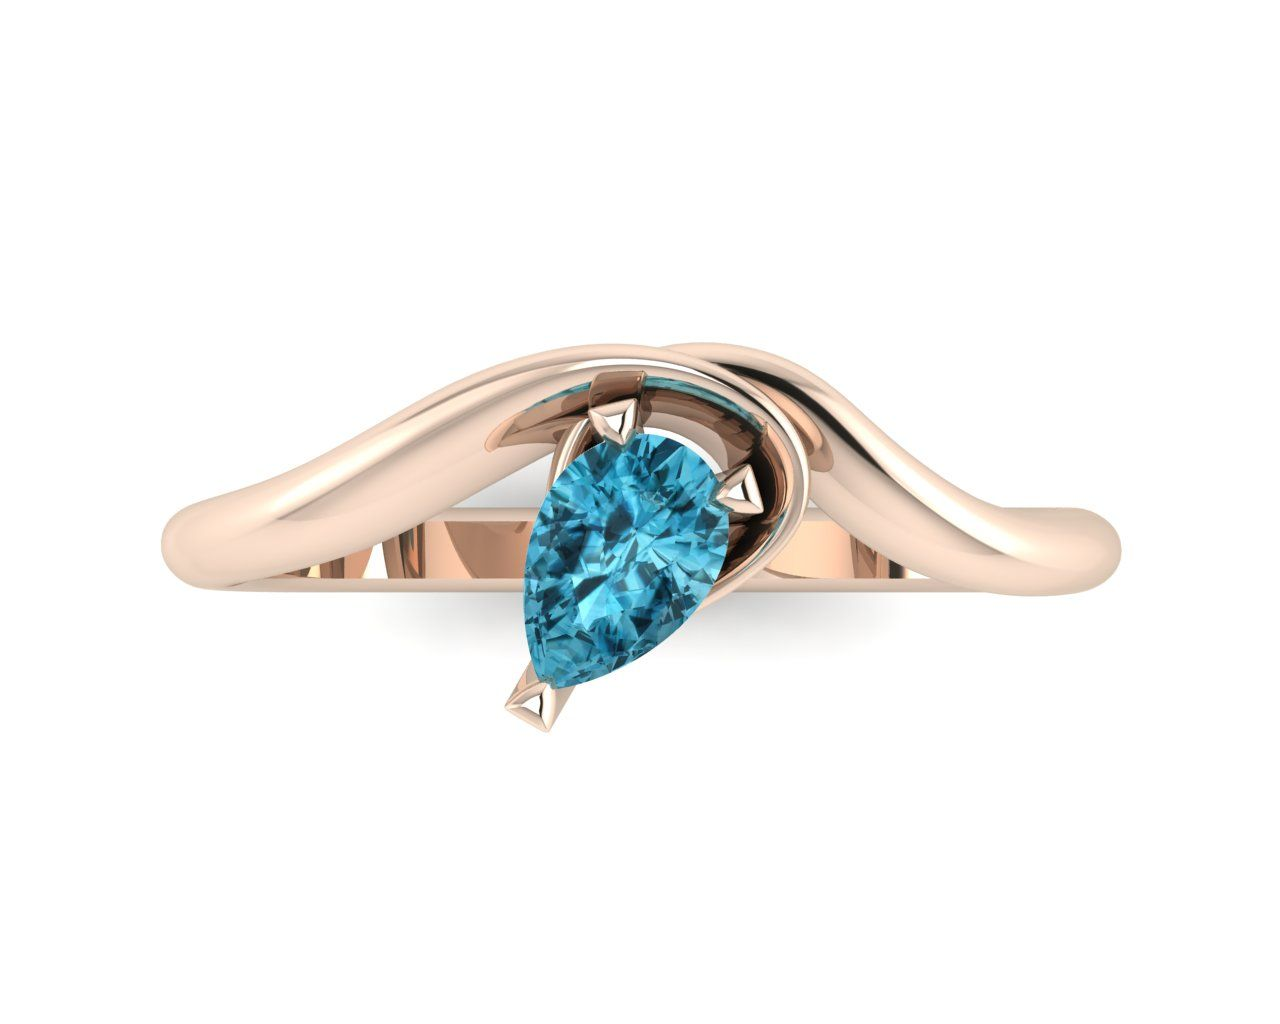 Unusual zircon tear shaped blue zircon solitaire engagement ring